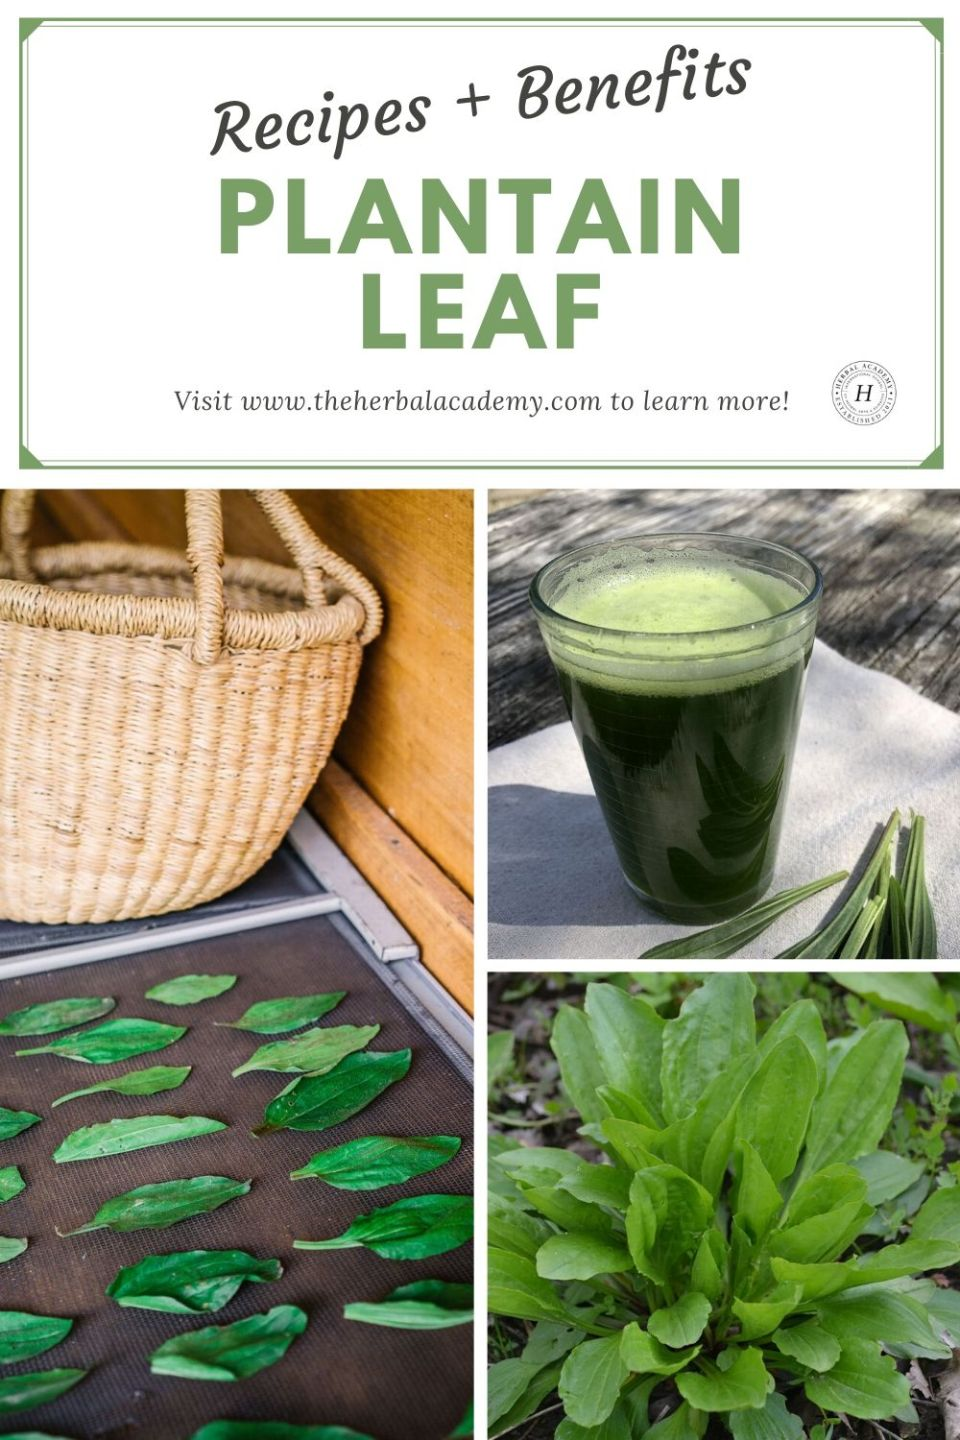 Plantain Leaf Benefits and Recipes | Herbal Academy | Learn the many benefits of plantain leaf (Plantago spp.) and how to use it in two simple recipes, a juice and a face mask.